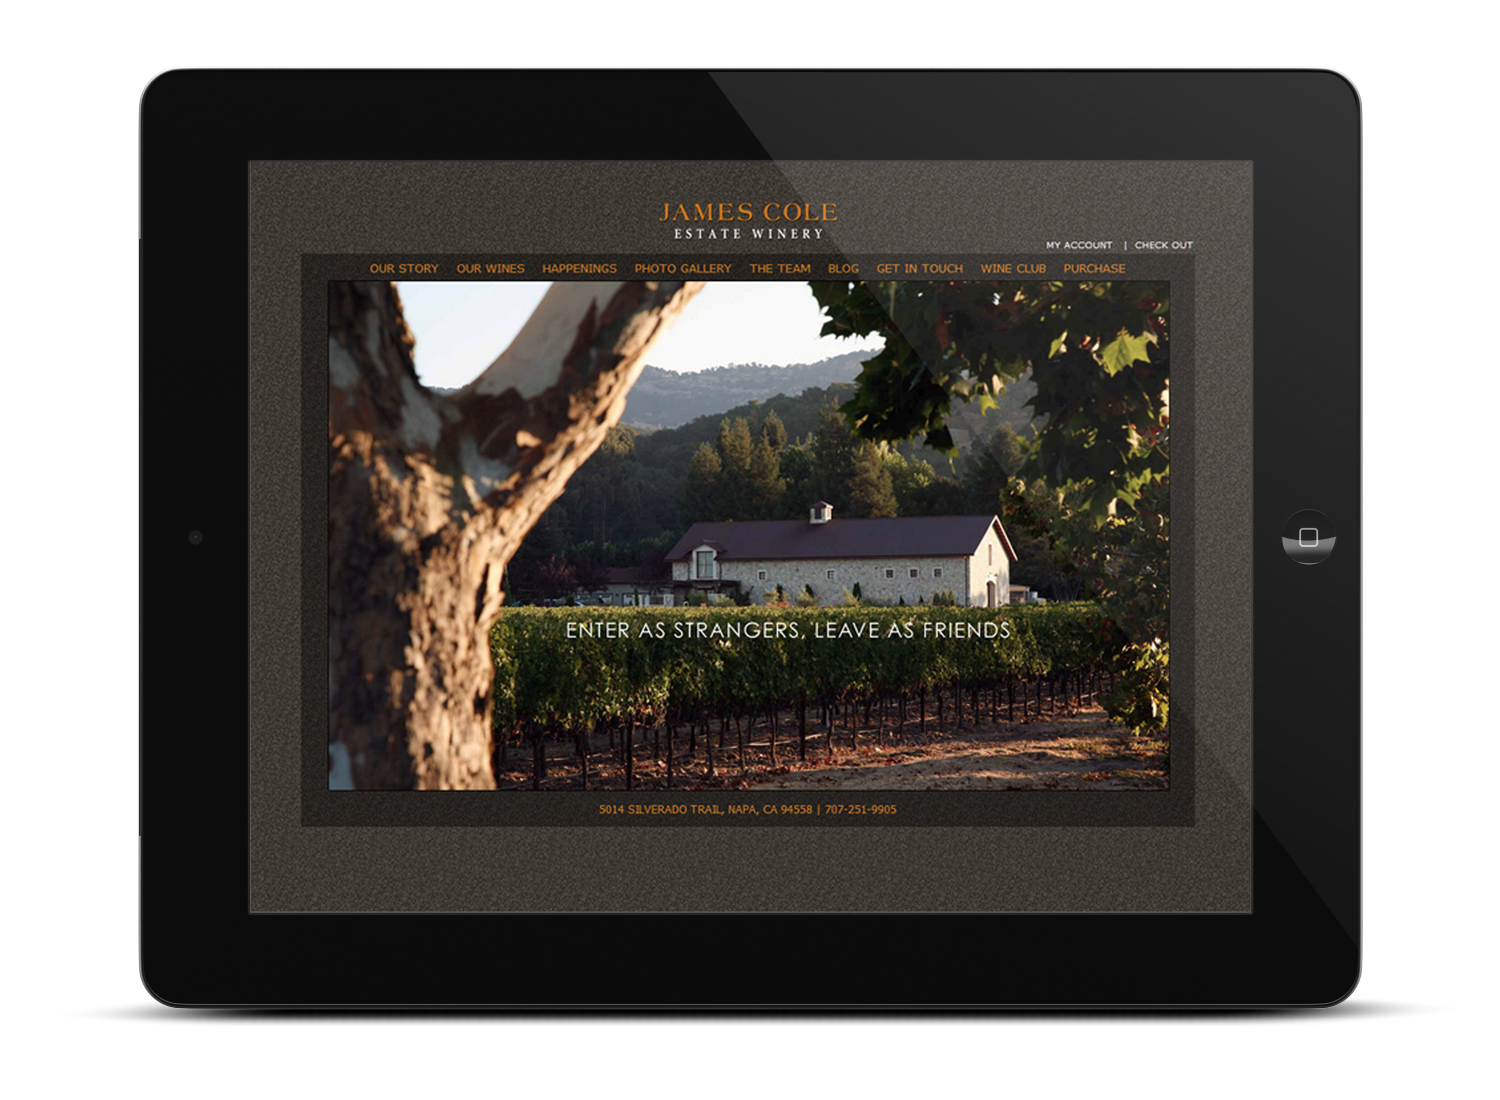 James Cole Winery Web Site